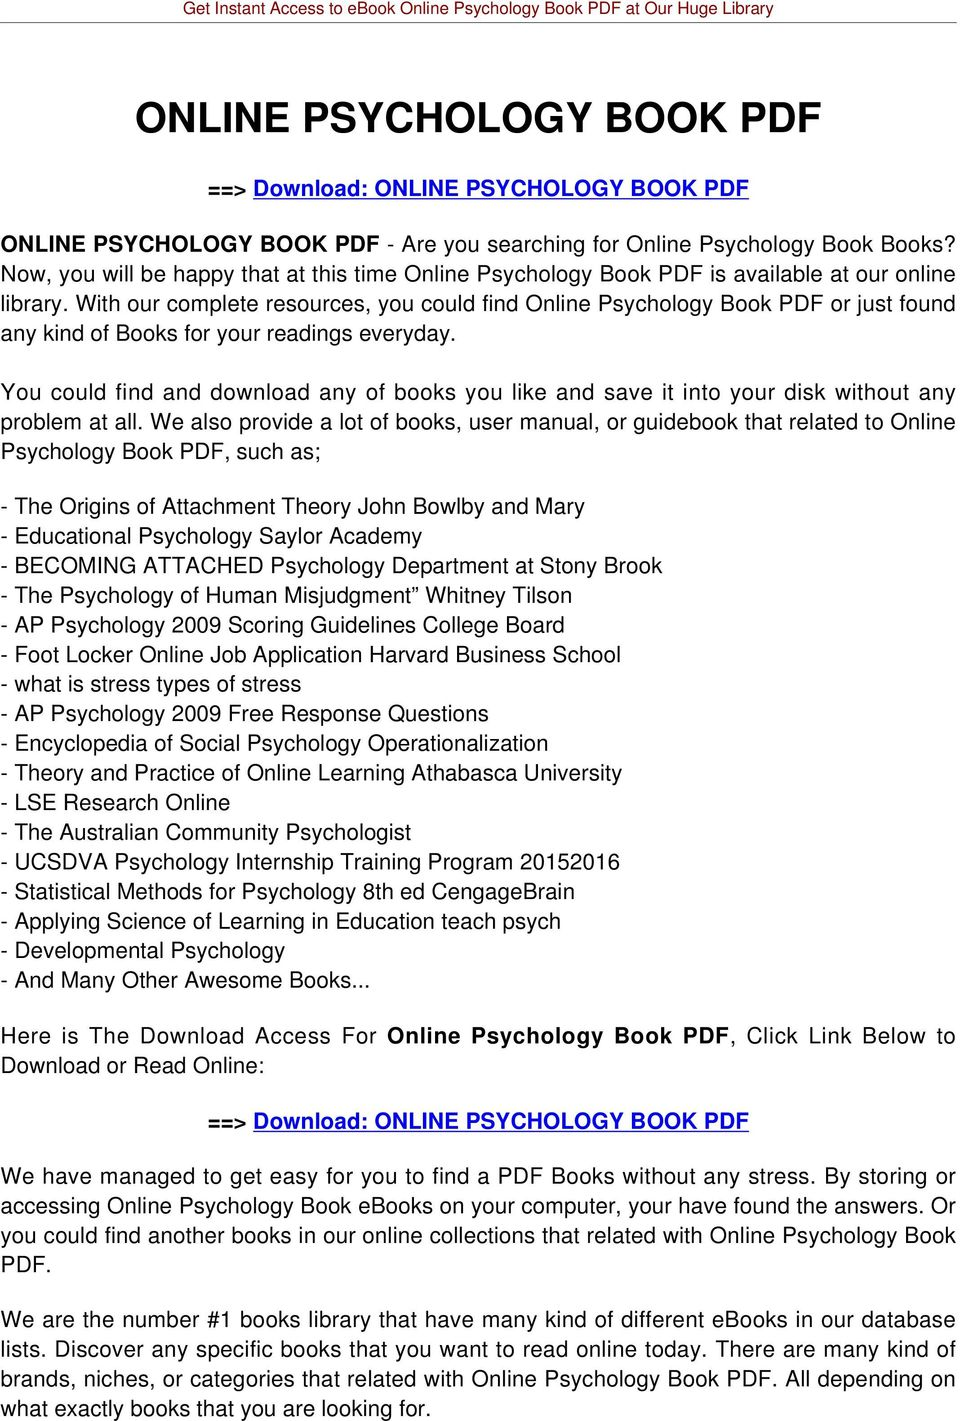 With our complete resources, you could find Online Psychology Book PDF or just found any kind of Books for your readings everyday.